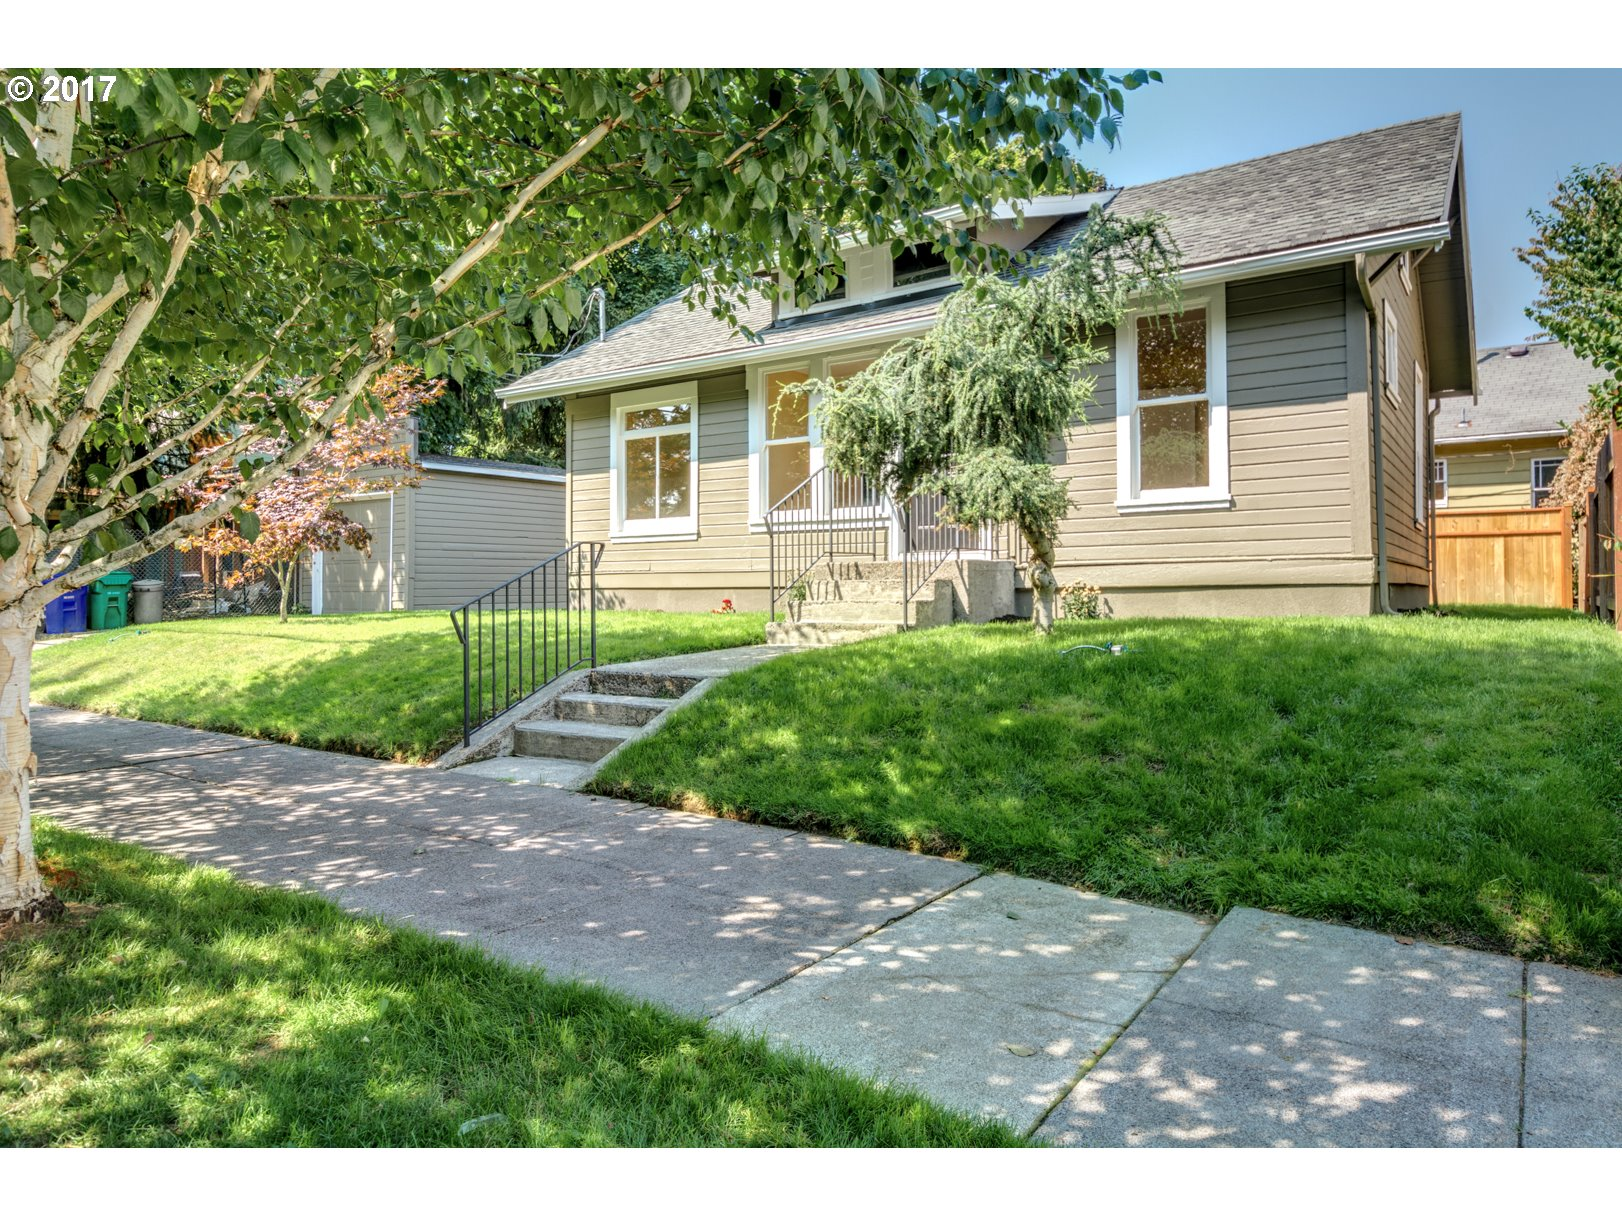 Darling University Park remodeled home. New fixtures. New paint inside and out. Updated bathroom and laundry room. Within minutes from downtown. New privacy fence. Move-in ready and perfect for a first time home buyer or investment as a rental property!